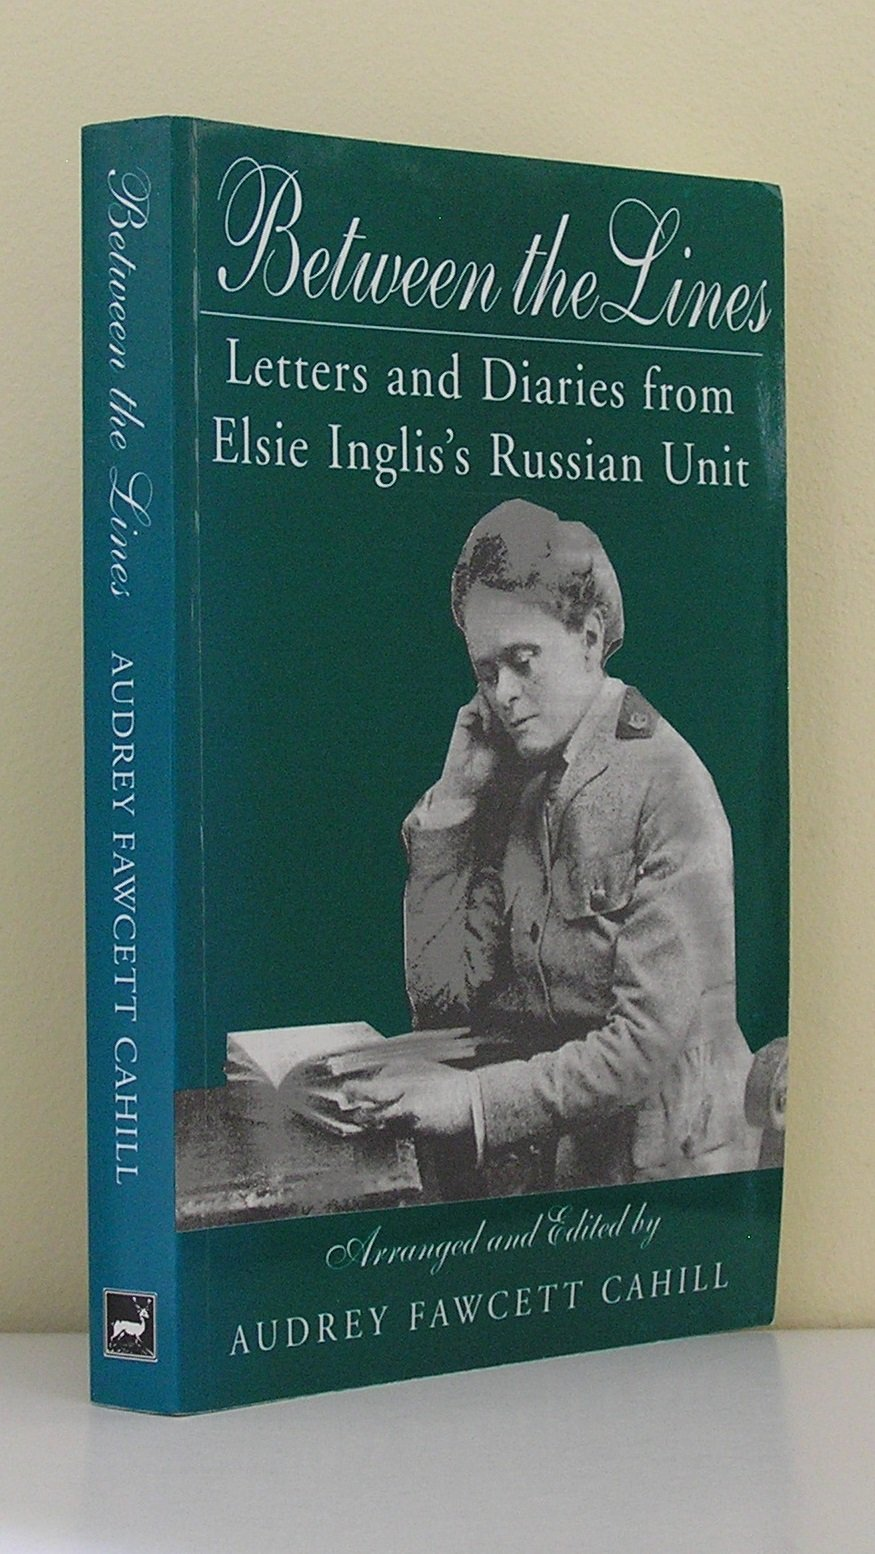 between-the-lines-letters-and-diaries-from-elsie-inglis-s-russian-unit